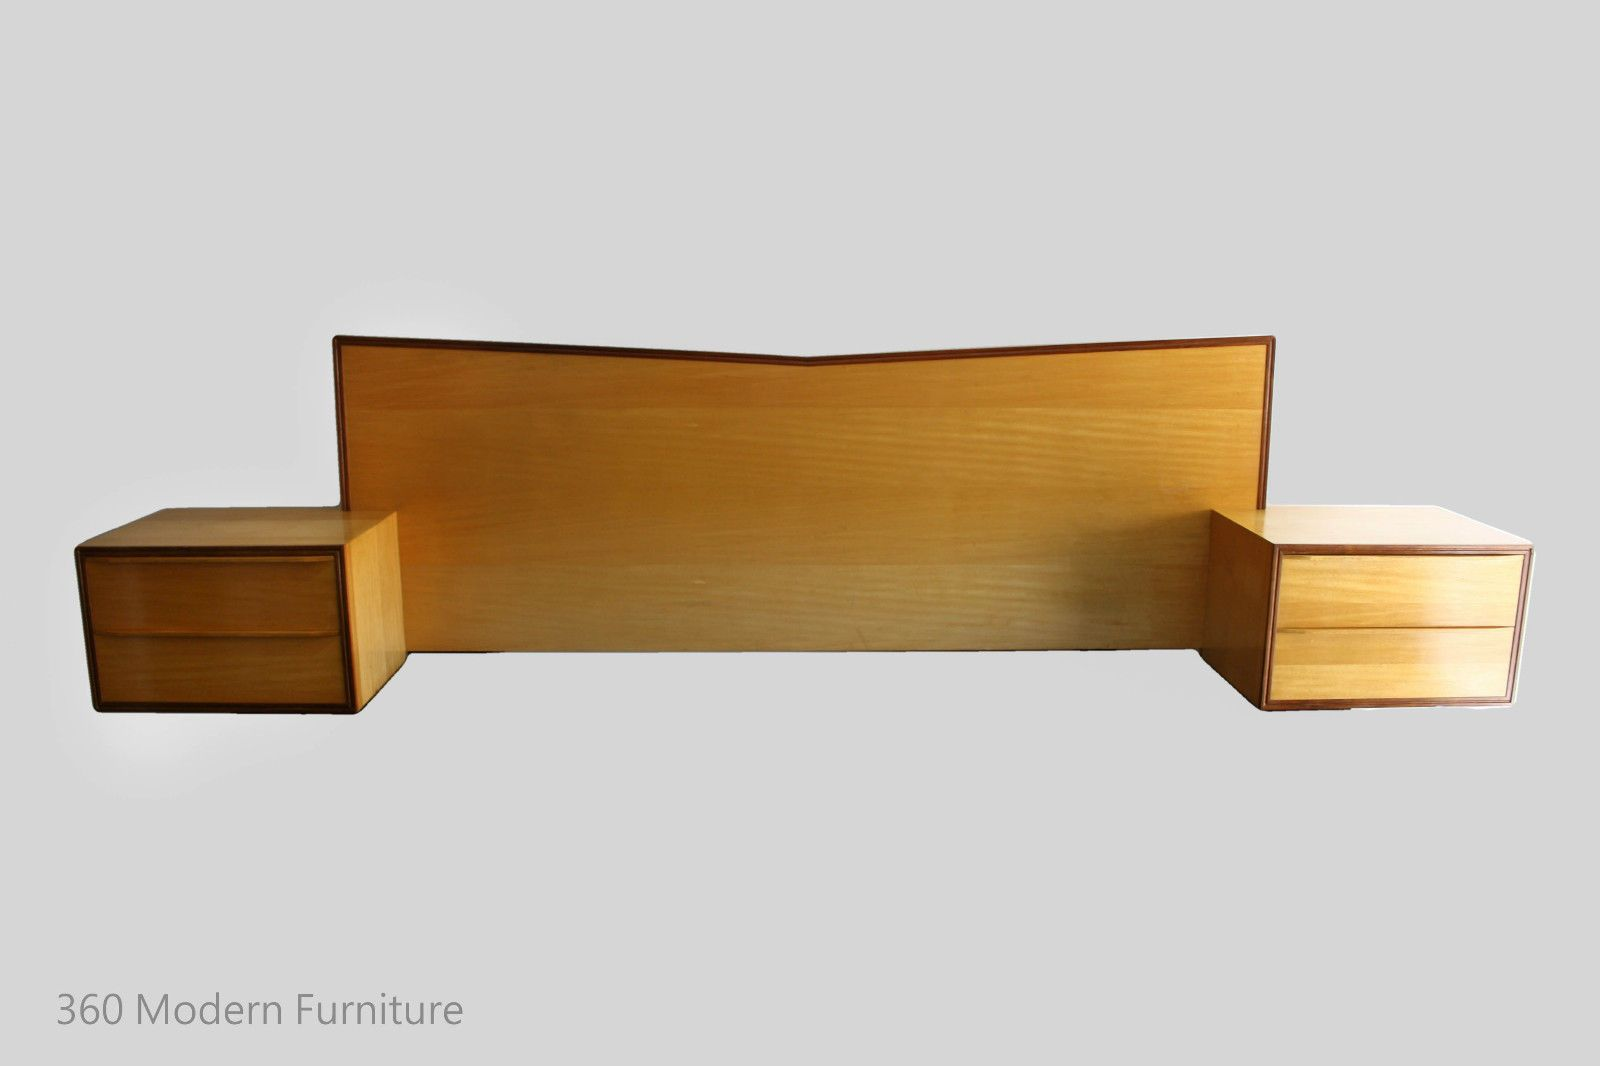 MID Century Rosando Brothers Bros Floating Bedside Tables Drawers Bedhead Queen Retro Vintage Blondewood Walnut in VIC | 360 Modern Furniture eBay